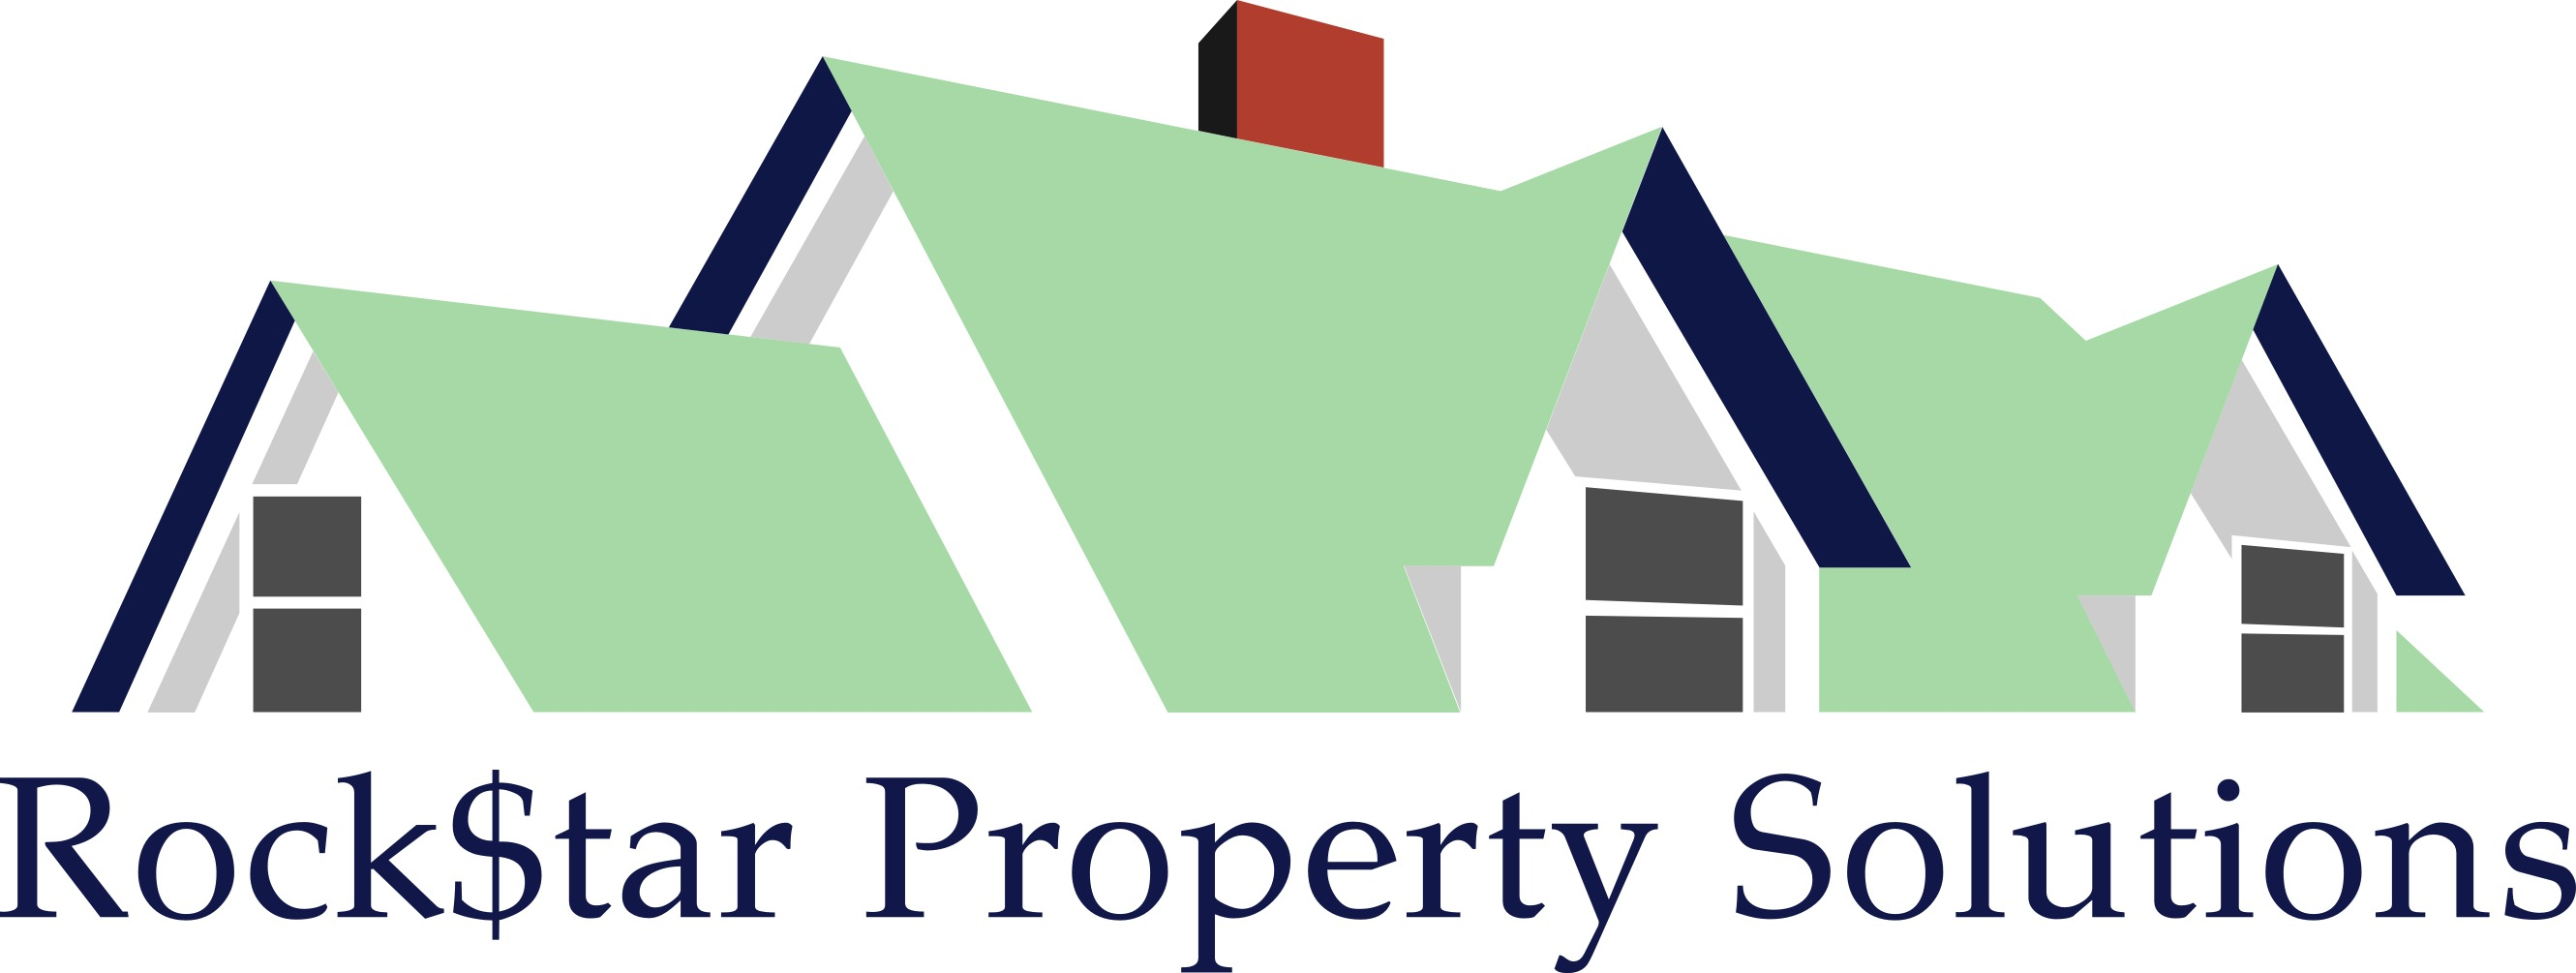 Rock$tar Property Solutions